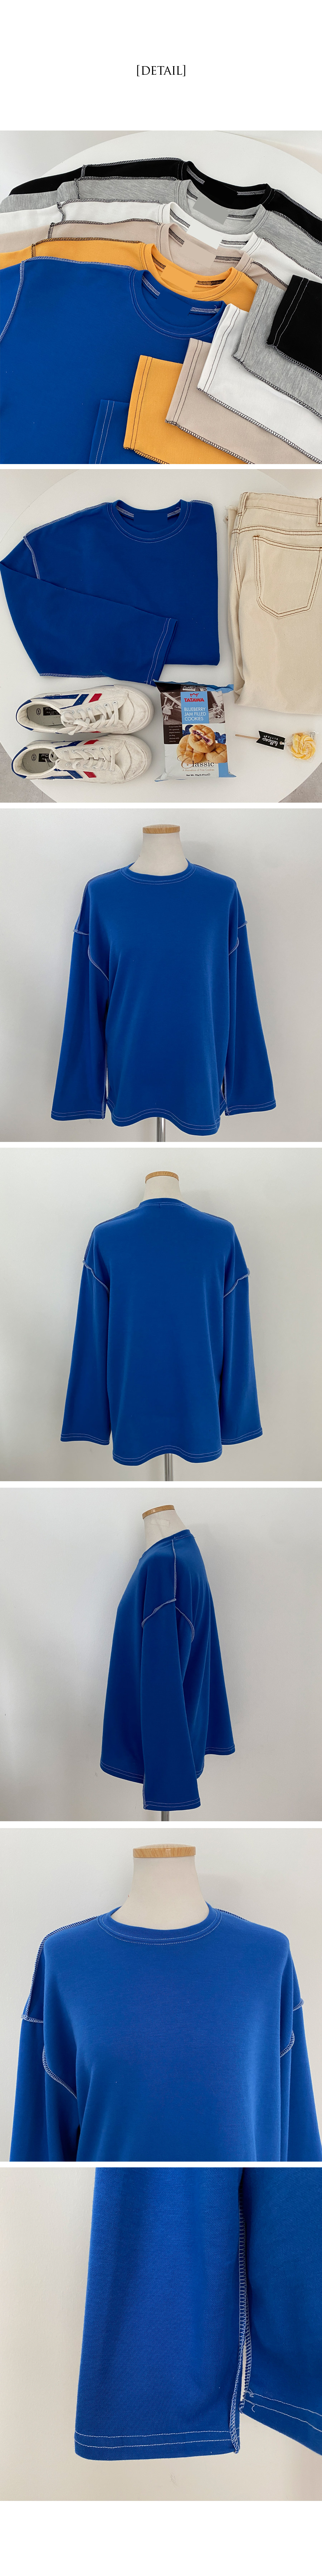 Lego stitch long-sleeved T-shirt